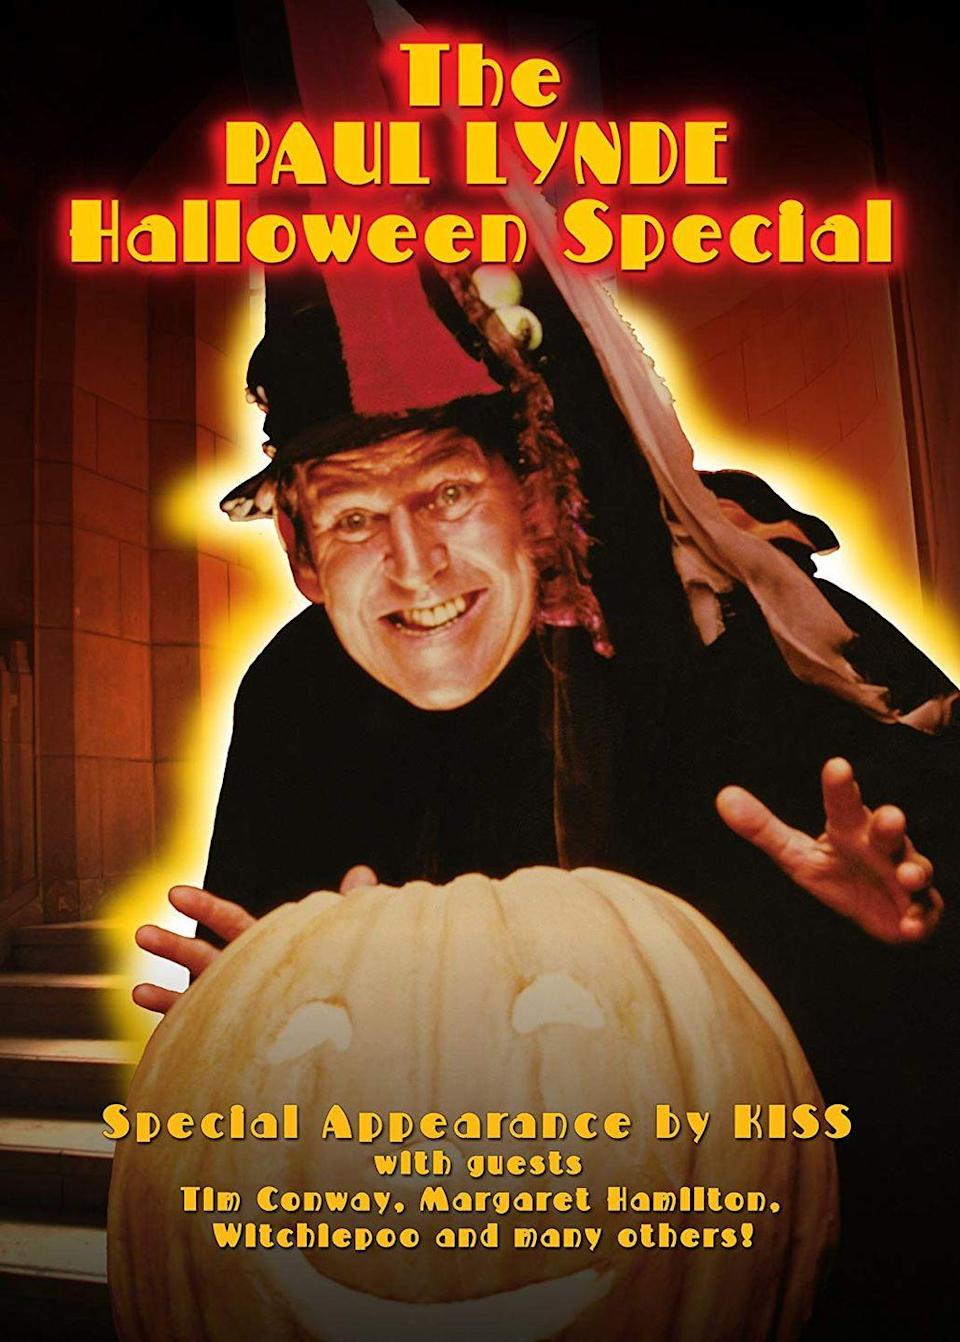 <p>Televised variety specials were popular during the 1970s, so it's no wonder that the decade saw its fair share of Halloween variety shows. Airing on ABC, <em>The Paul Lynde Halloween Special </em>was nothing short of bizarre, at least by today's standards. How strange was it? Let's just say special guests included Betty White, Florence Henderson, and heavy metal rock band KISS.</p>